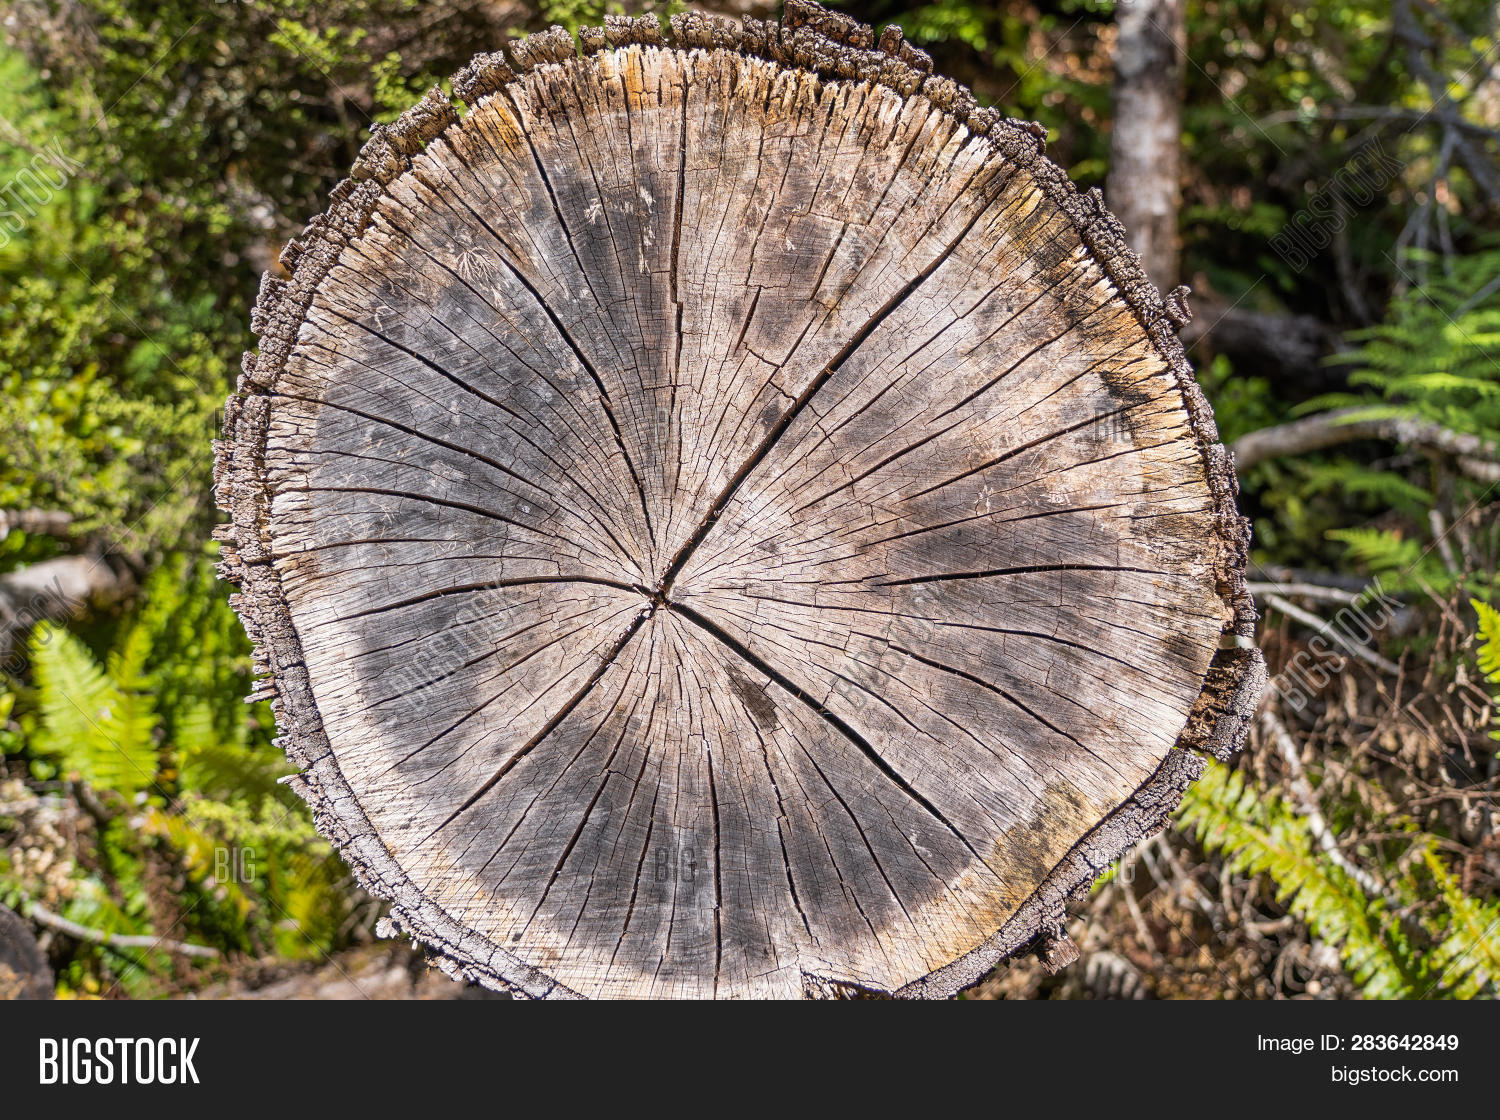 Wood Texture Of Cut Tree Trunk Close Up Detail Annual Rings Create A Lightbox